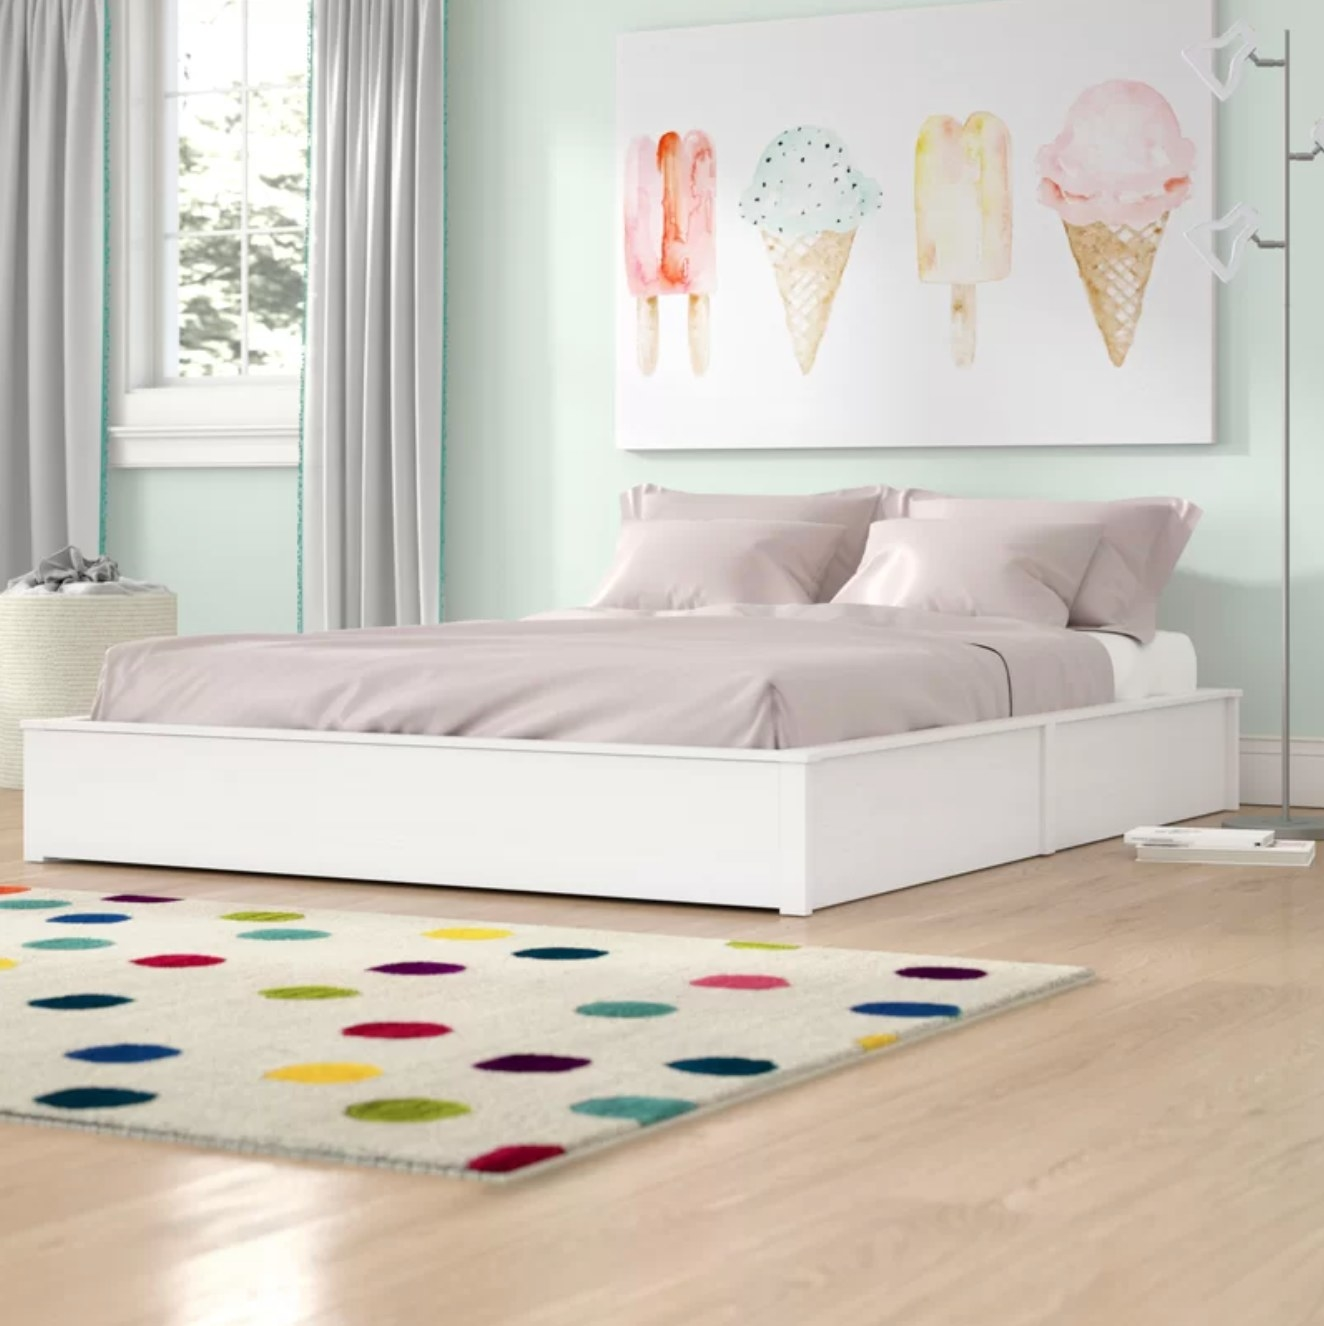 The platform bed in white